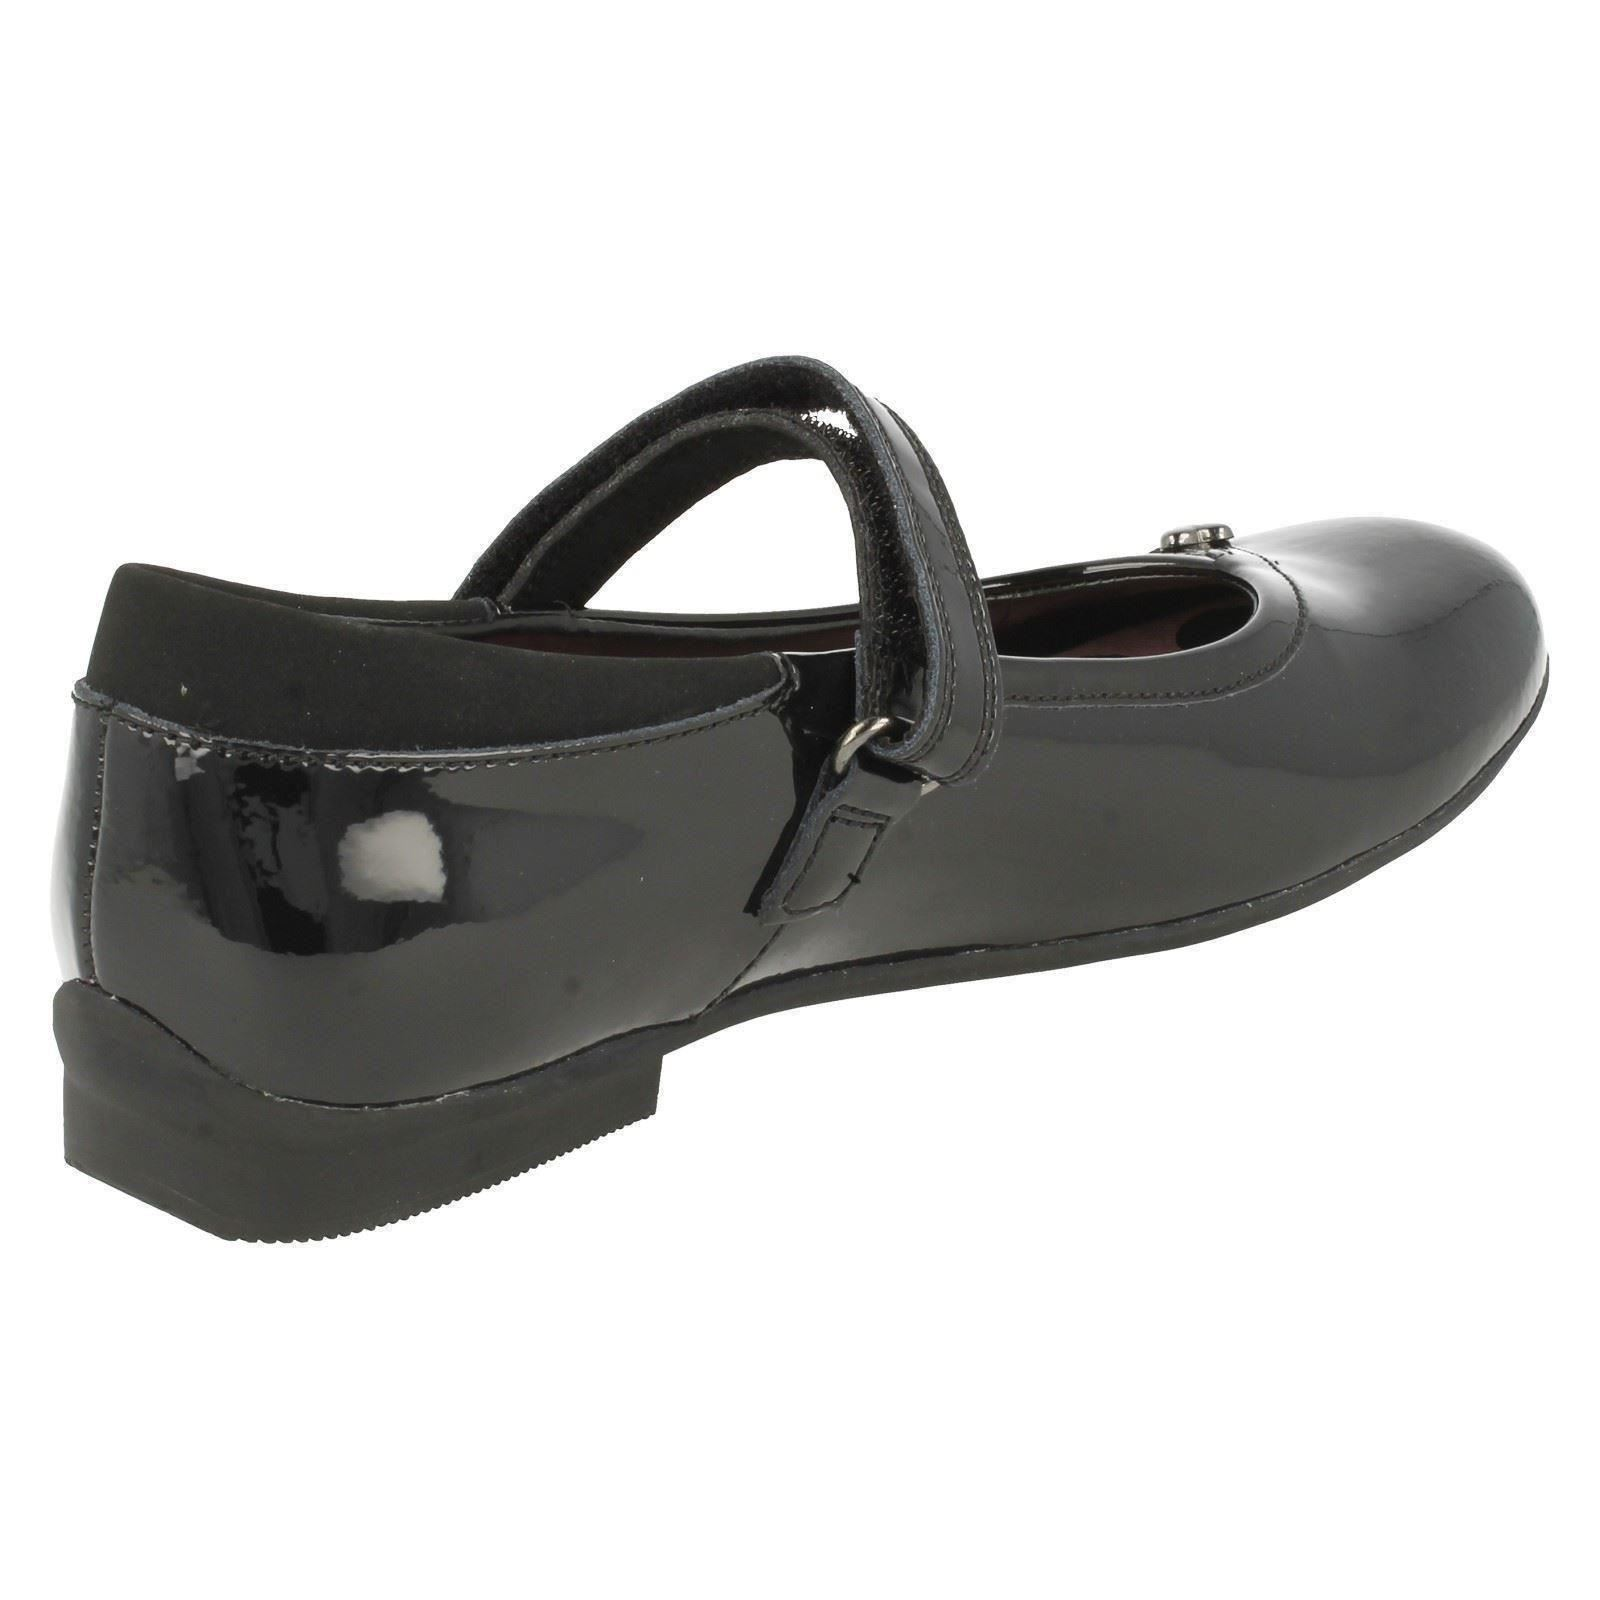 Girls Clarks Smart School Shoes Movello Lo Clothes, Shoes & Accessories Girls' Shoes